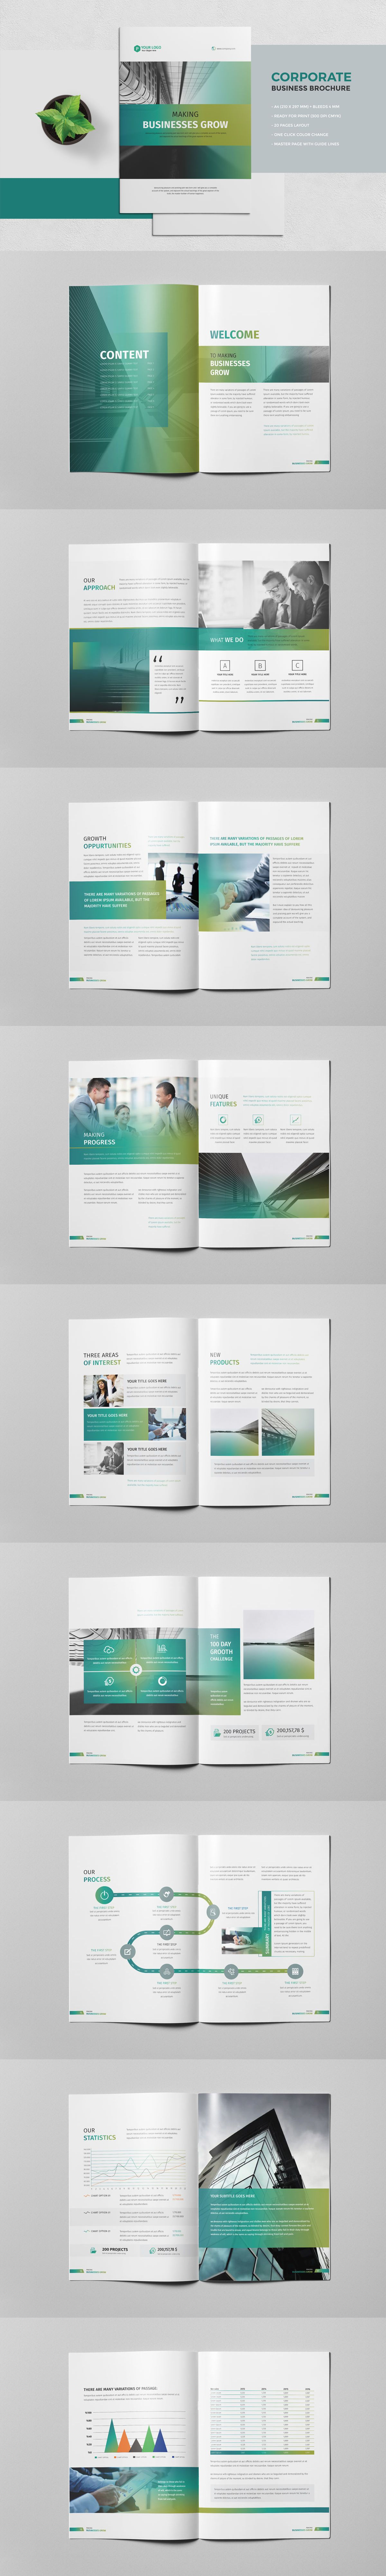 Corporate Business Brochure 20 Pages Template InDesign INDD ...